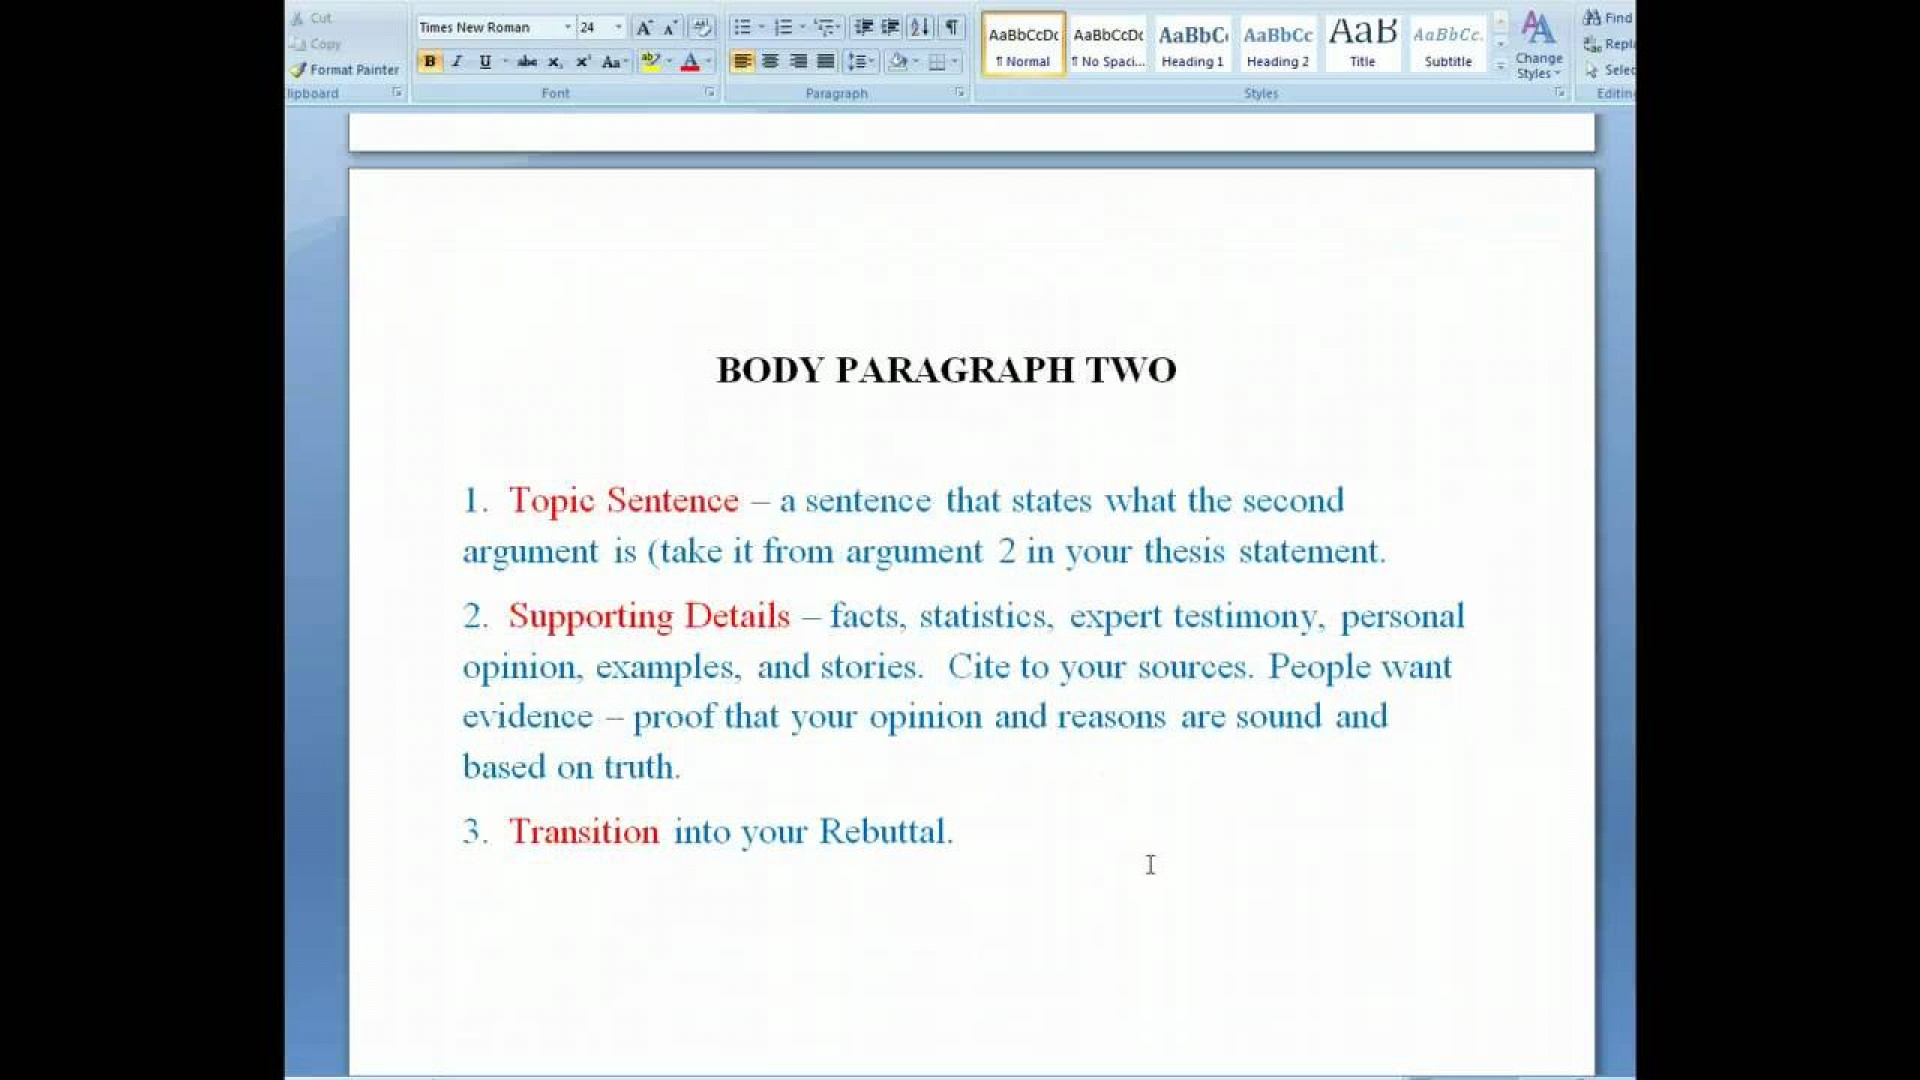 019 Argumentative Research Essay Example Phenomenal Thesis Paper Topics On Abortion Apa 1920